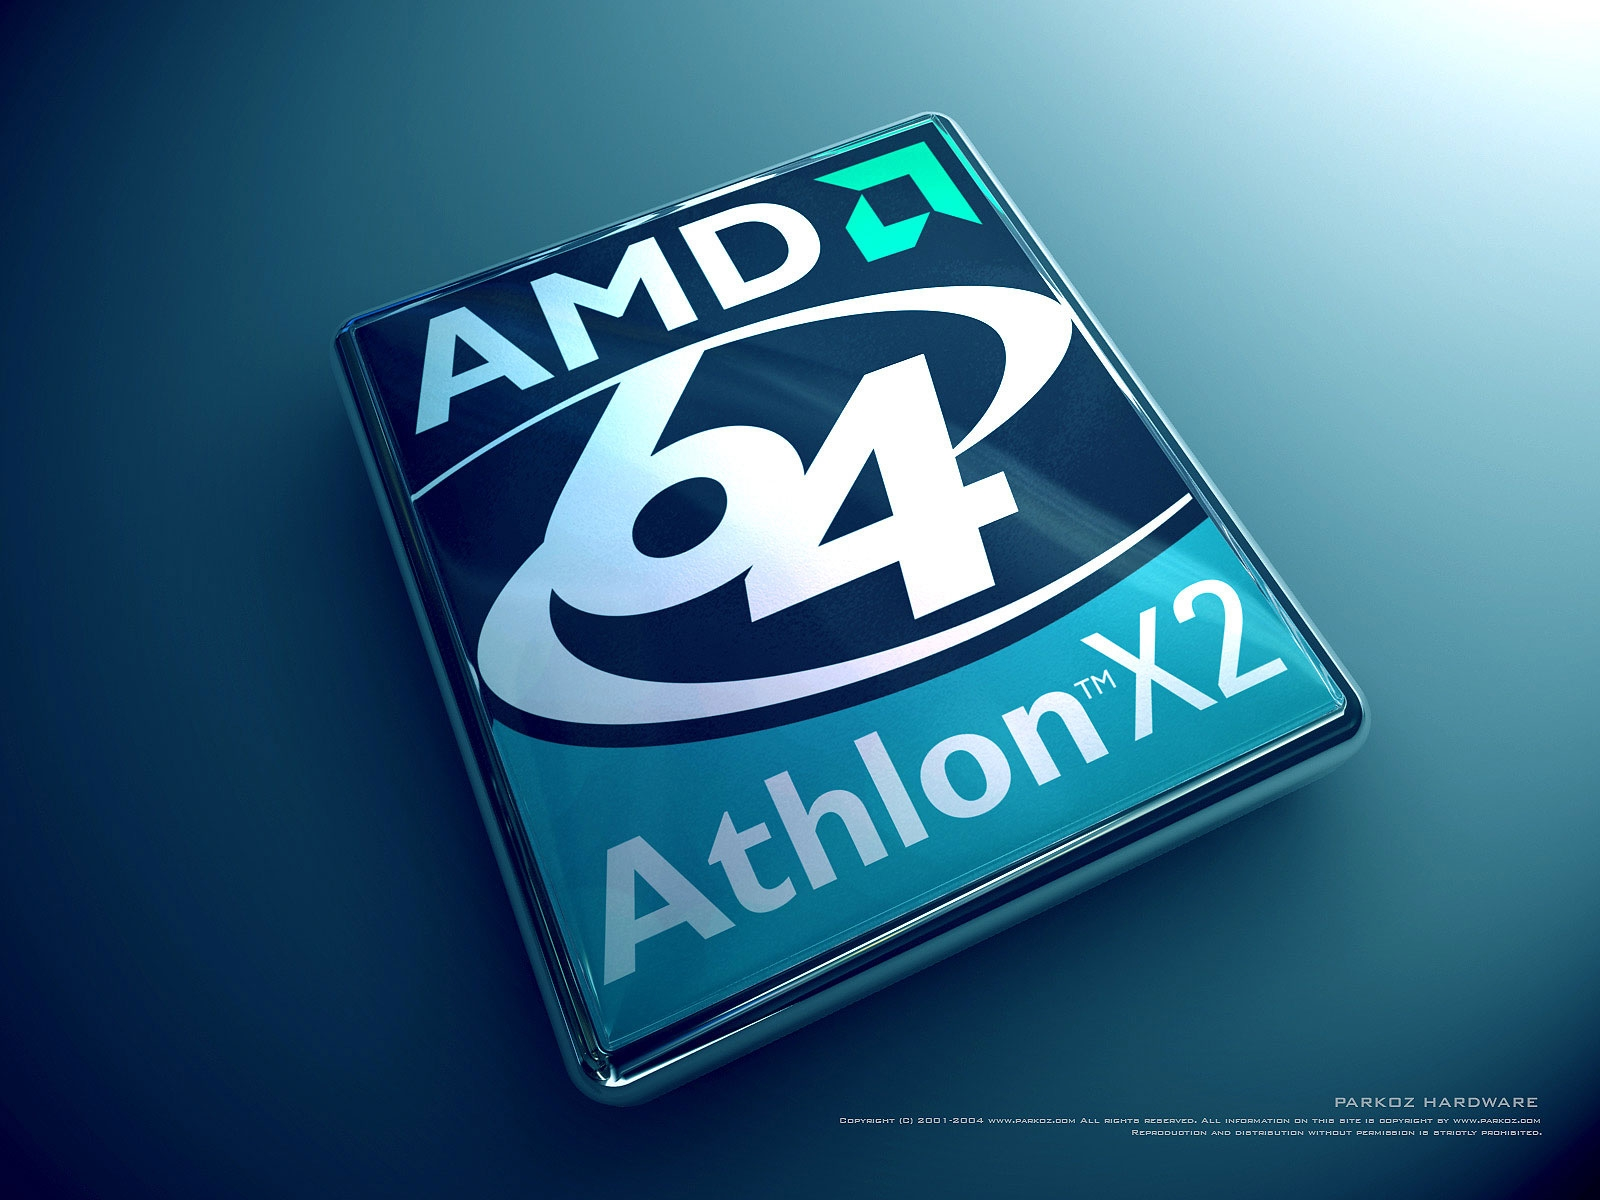 amd64 x2 wallpaper i - photo #3